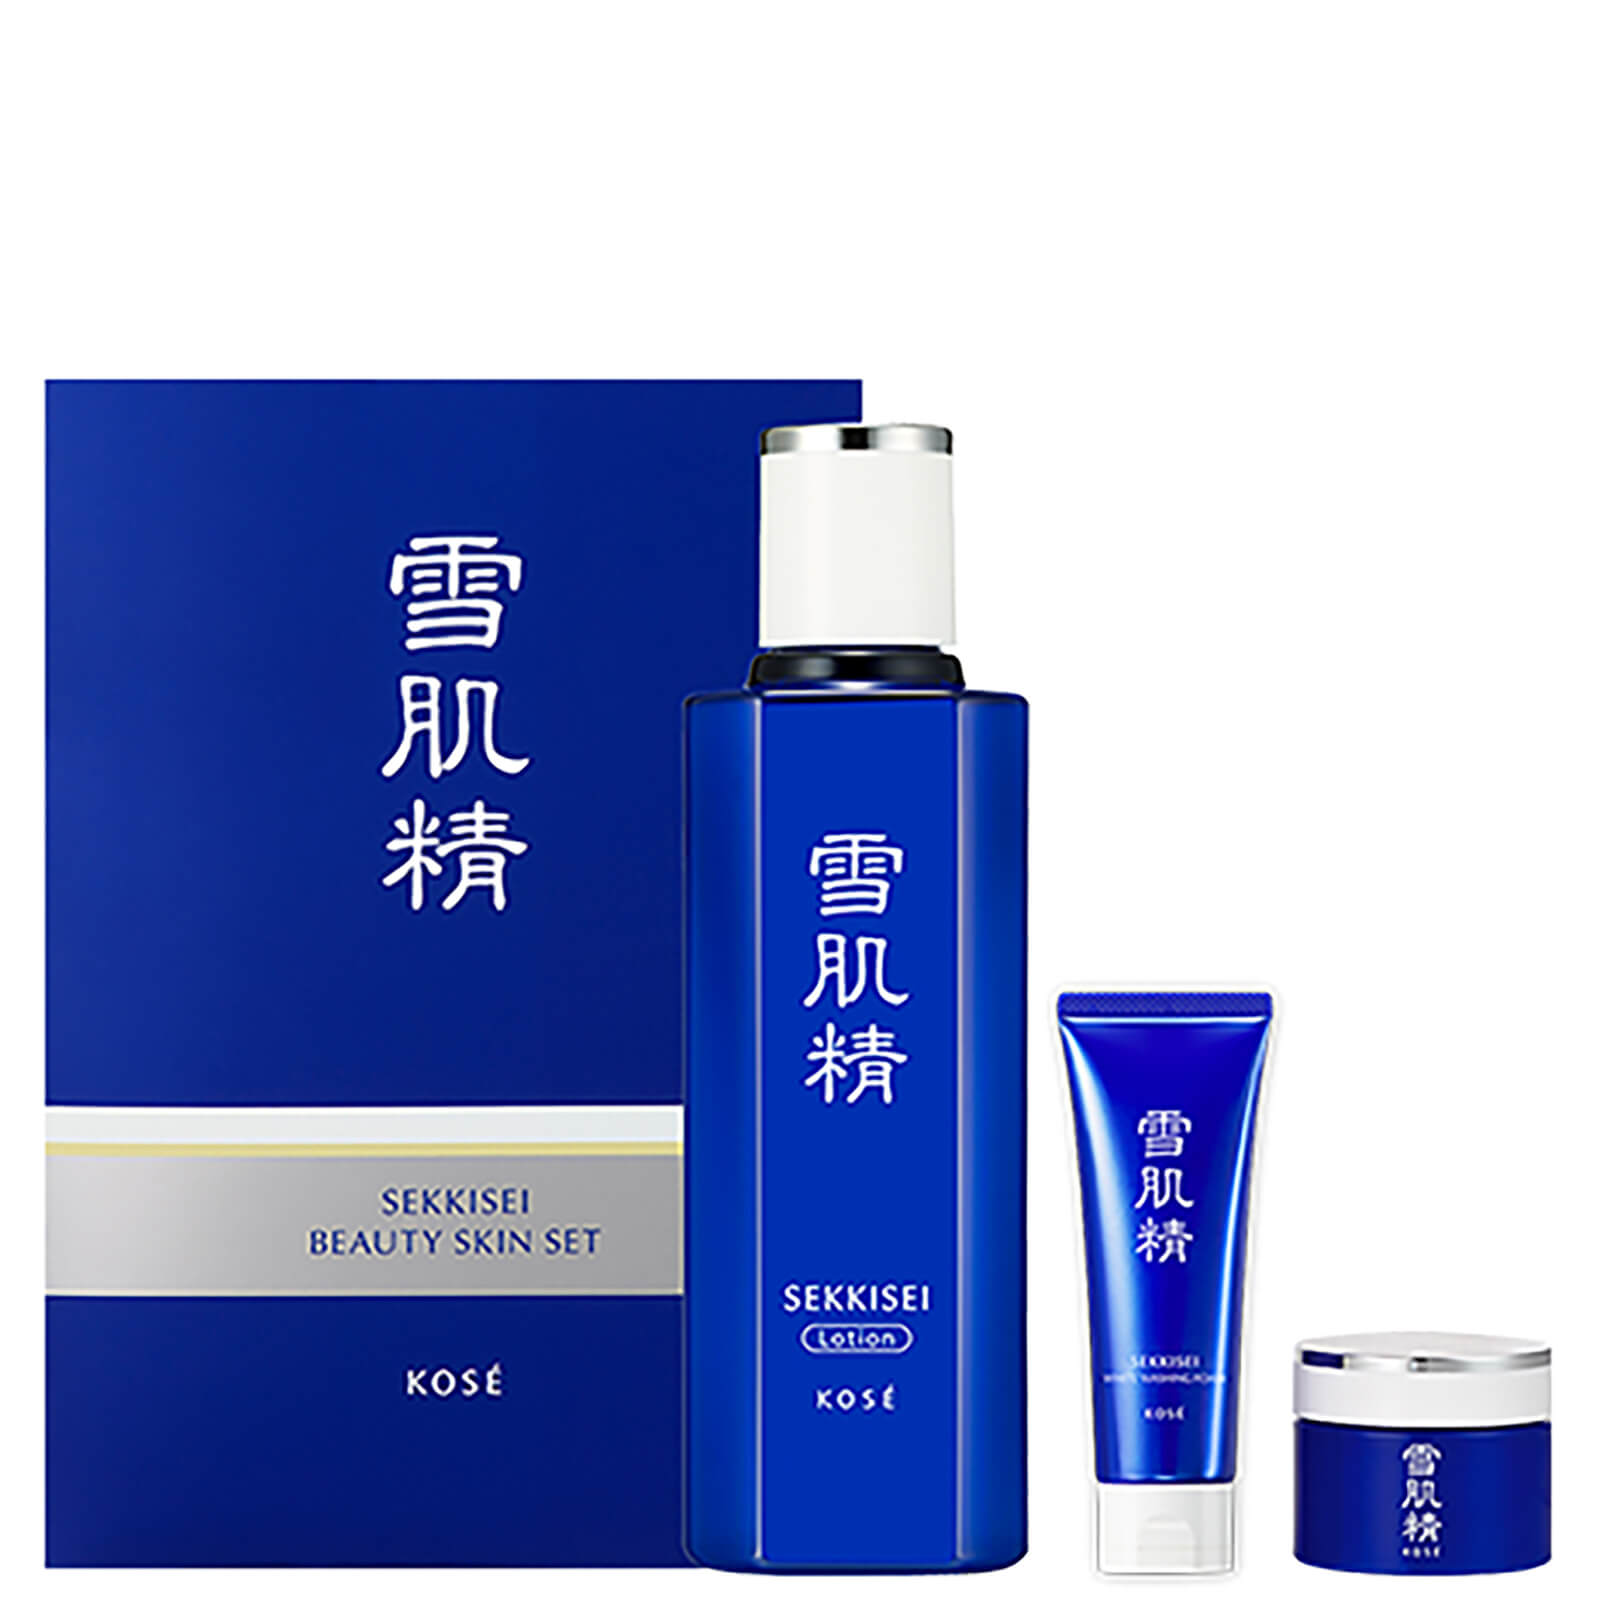 KOSE Sekkisei SEKKISEI BEAUTY SKIN SET ENRICHED